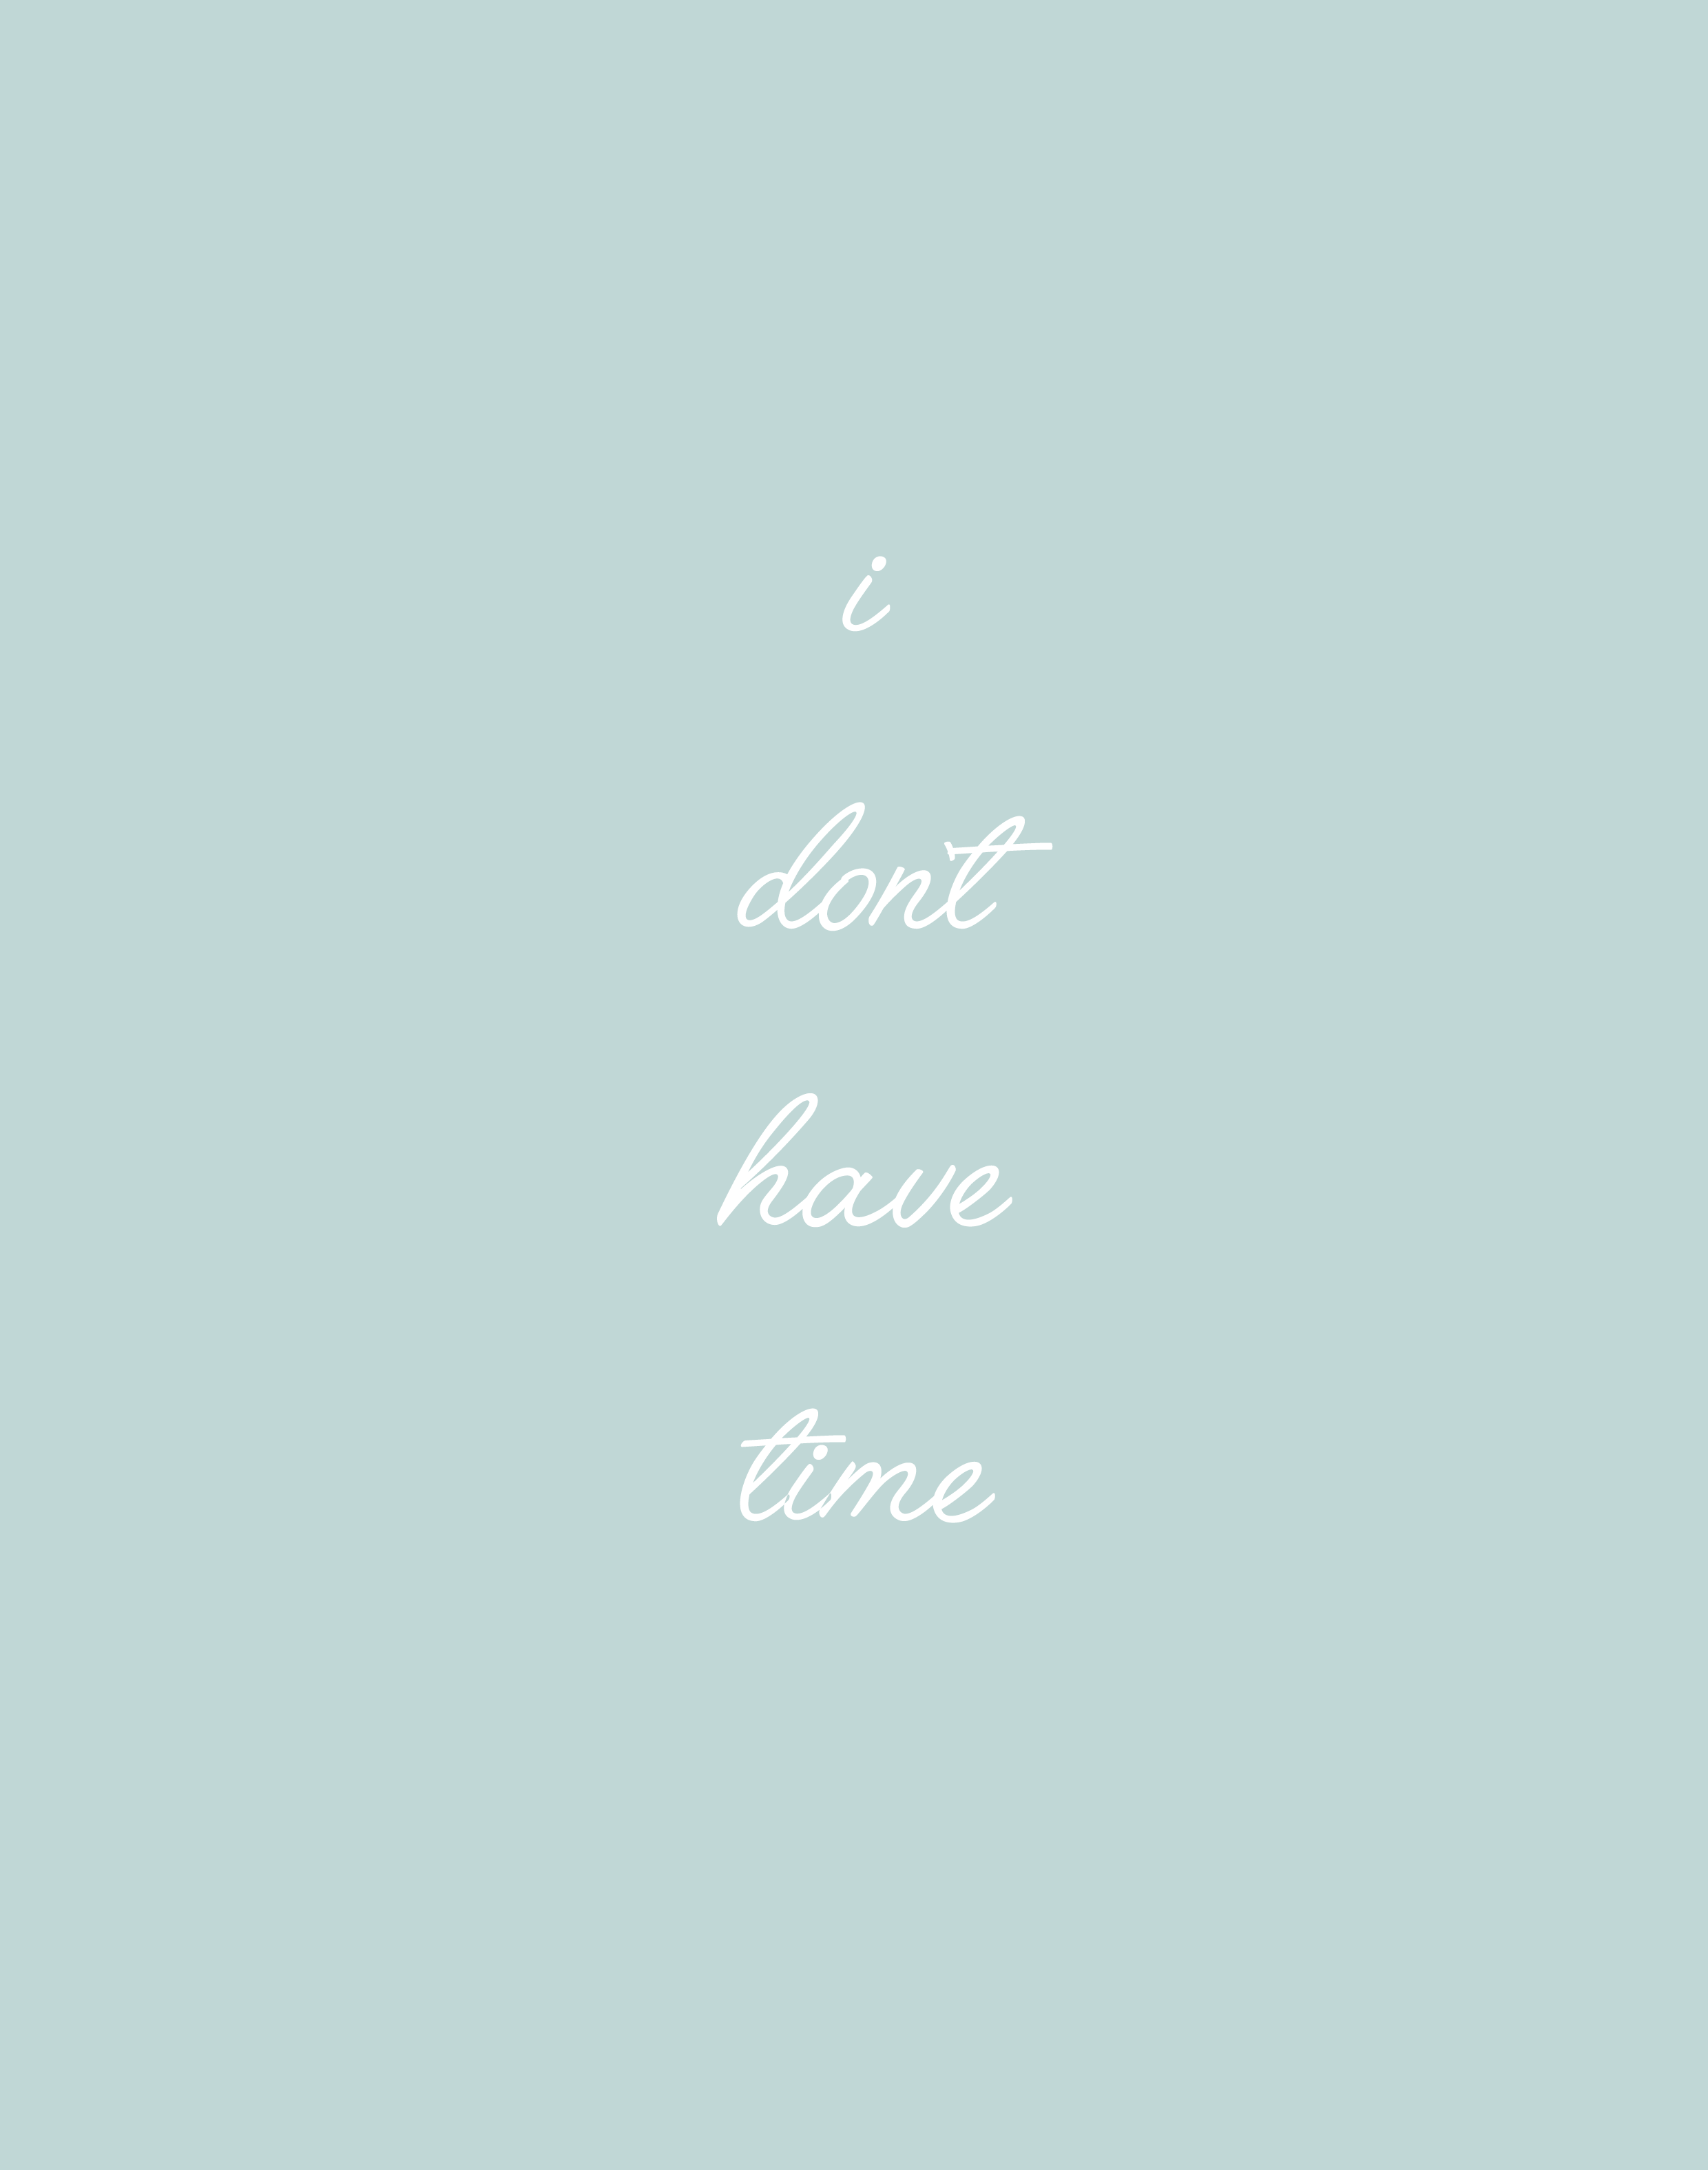 I DON'T HAVE TIME - The whole I don't have time thing is rarely true. Of course, sometimes we physically cannot fit something into our schedules and that's fine because there are only so many hours in the day. But most of the time I find myself saying that I don't have time when it's something I just don't want to do. I will never understand why I can't be honest with myself or to other people and say no I don't want to because there is nothing wrong with that. As well as saying I don't have time something else that I really need to work on is my time management in general. Sometimes I feel really on top of my game but lately, I seem to spending hours sat my desk yet not making any progress which only leads me to say I don't have time even more.